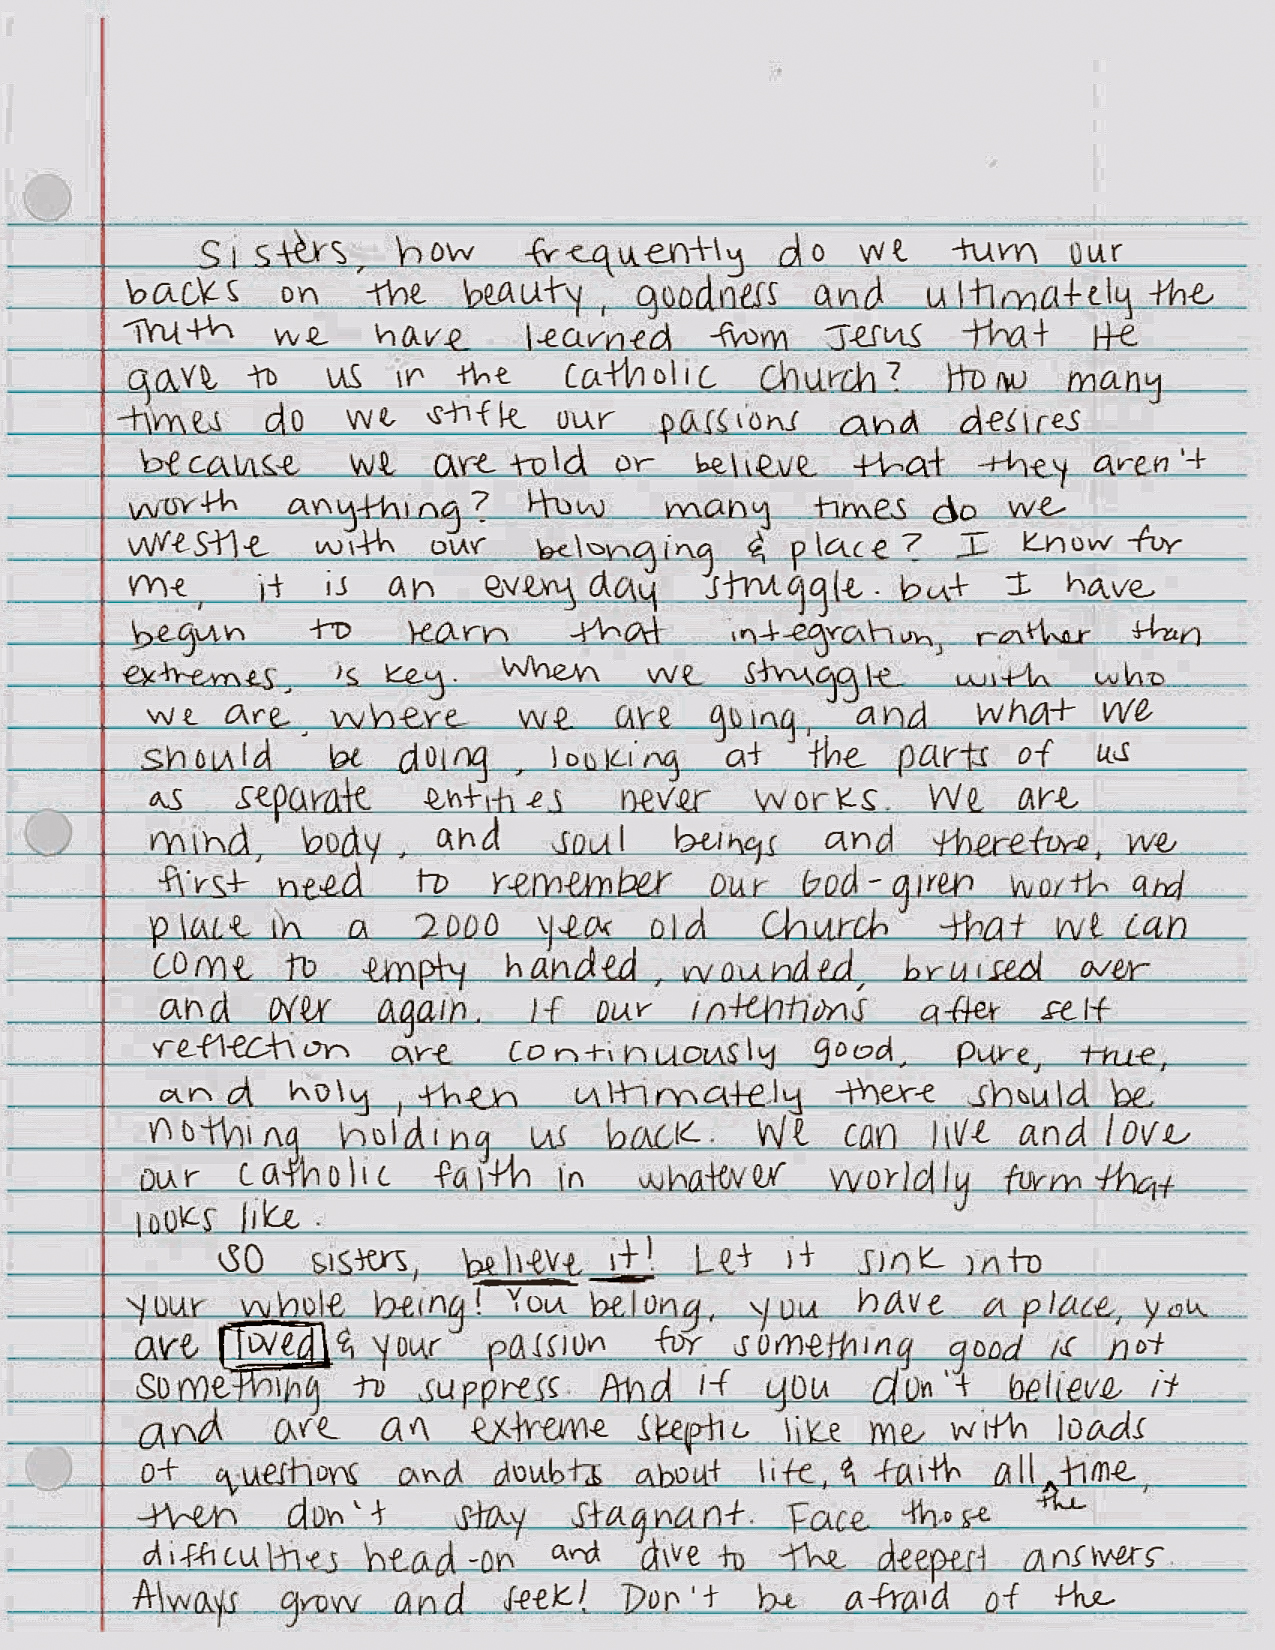 The-Catholic-Woman Letters-38.jpg